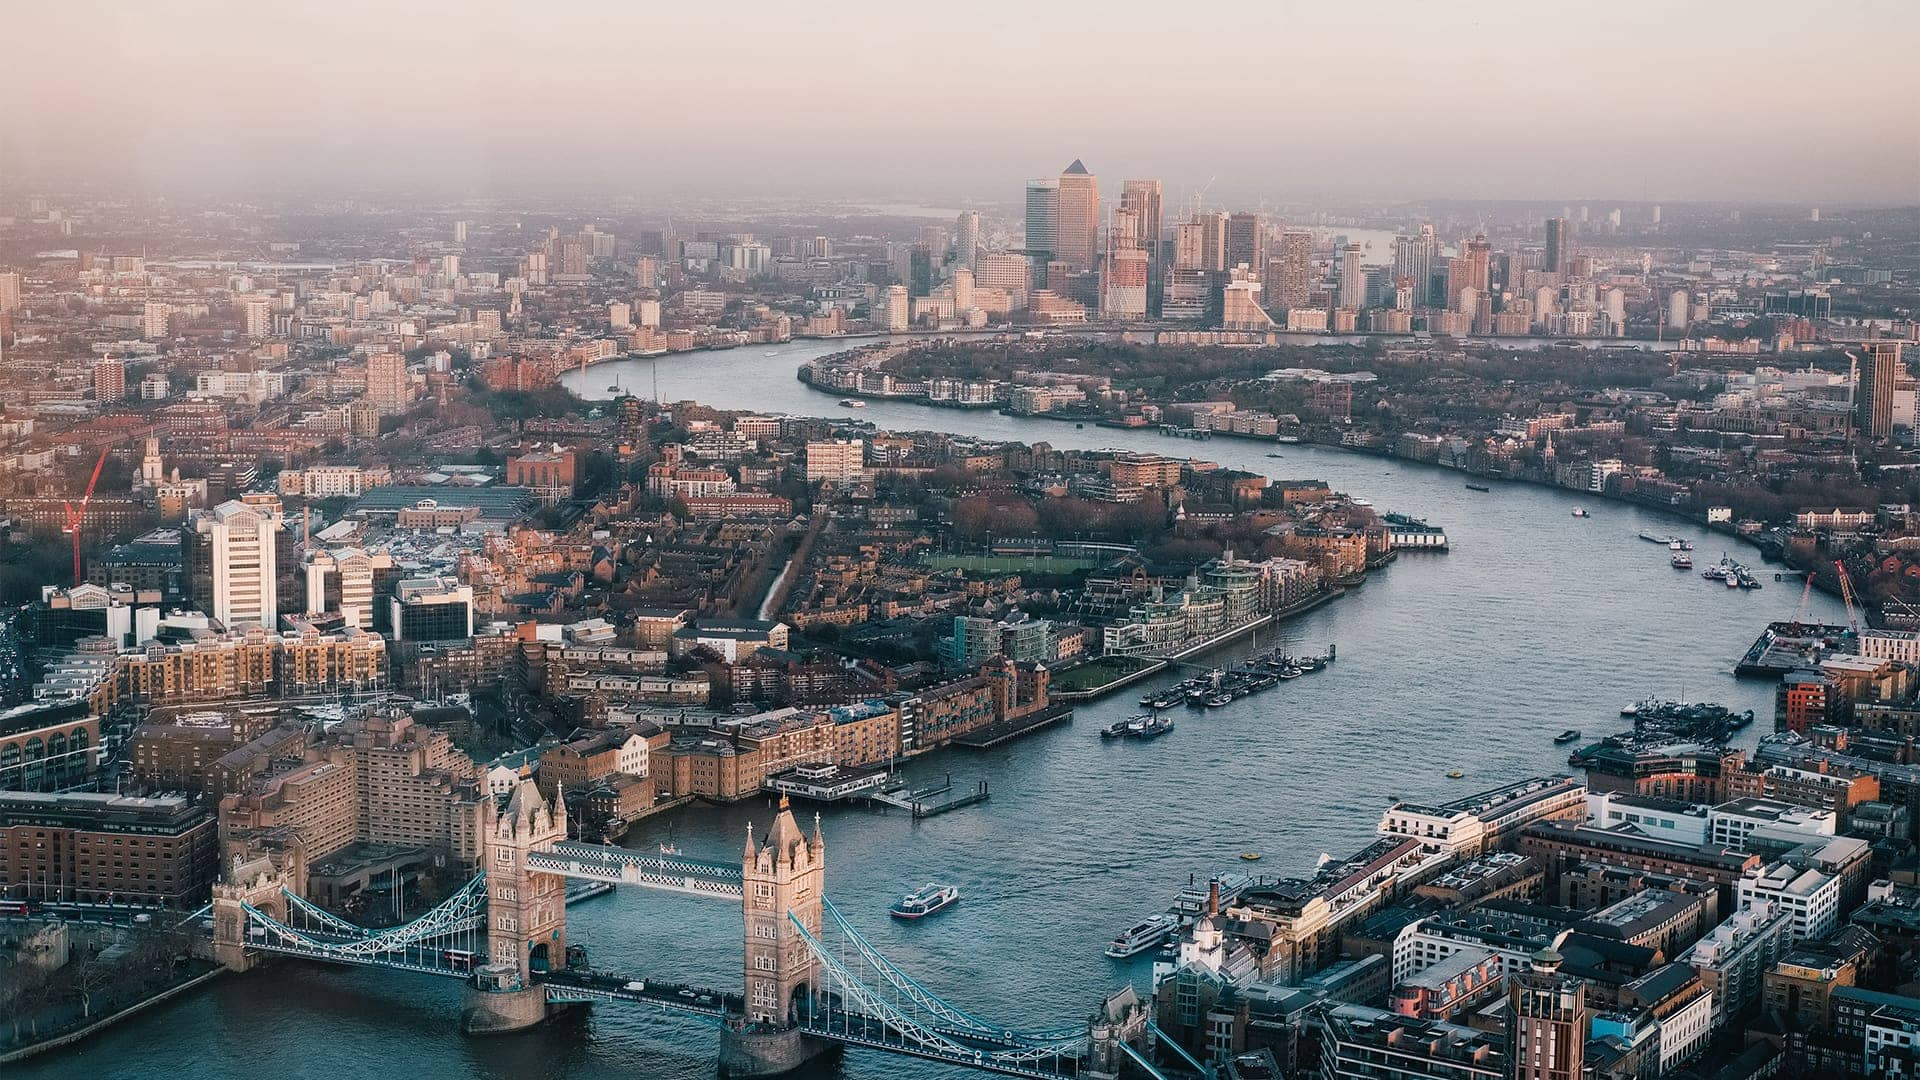 View over London